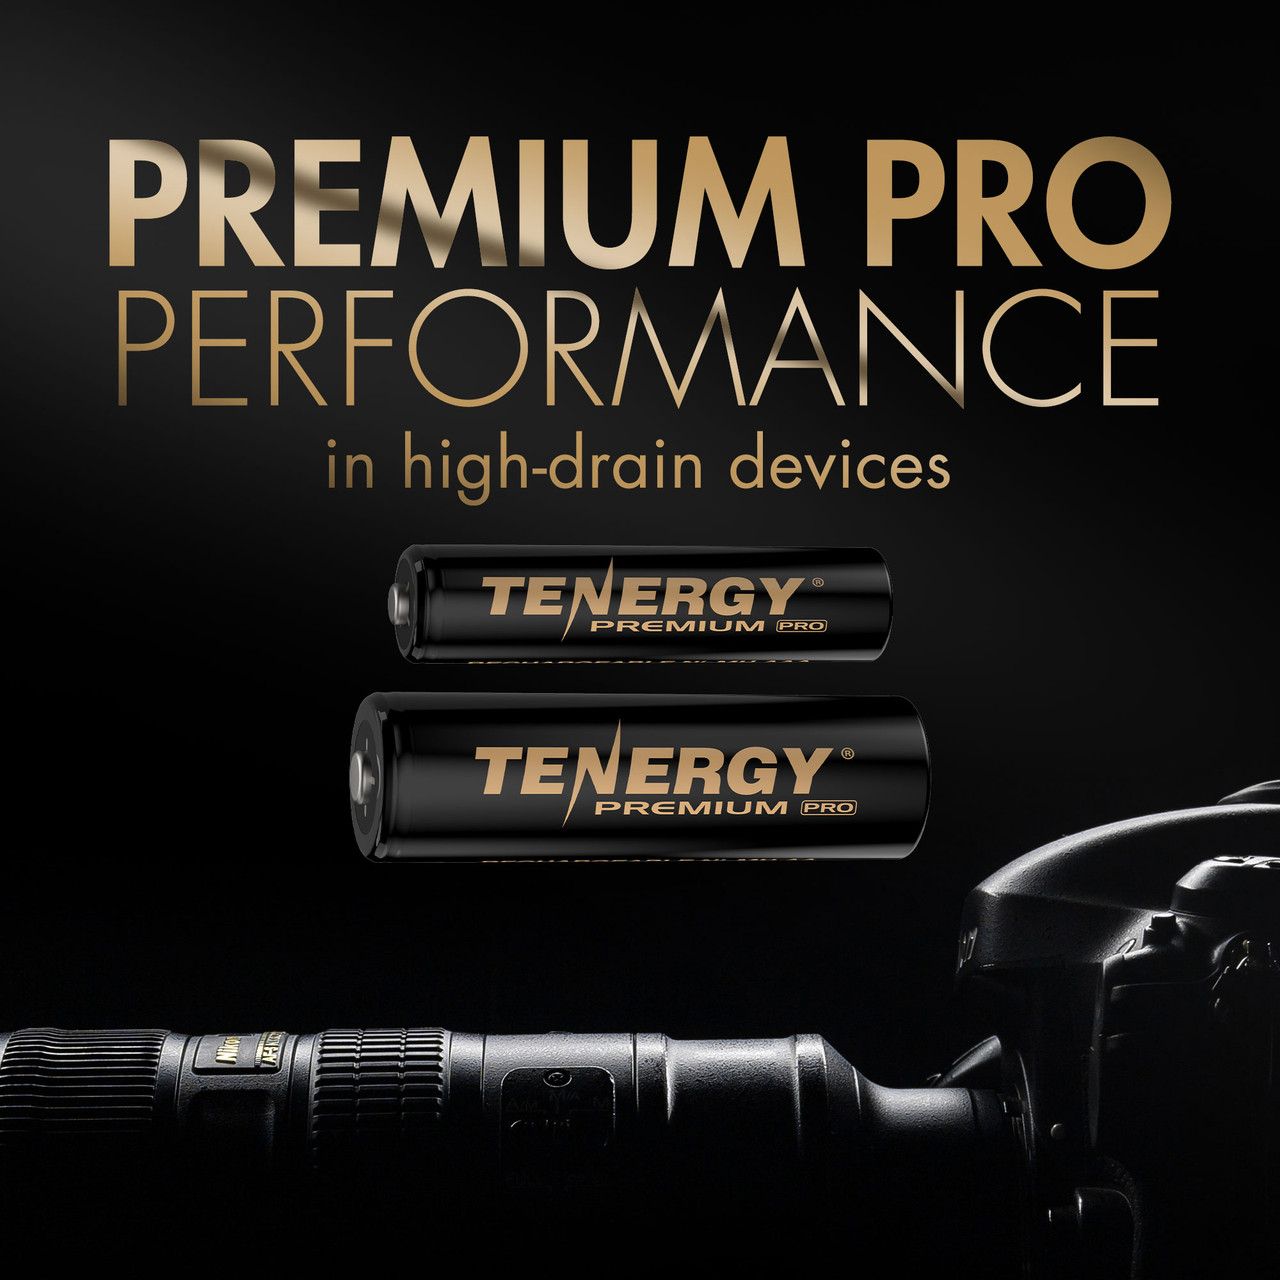 Tenergy Premium PRO Rechargeable AA and AAA Batteries Combo, High Capacity Low Self-Discharge 2800mah AA and 1100mAh NiMH AAA Battery, 8 Pack, 4 AA and 4 AAA